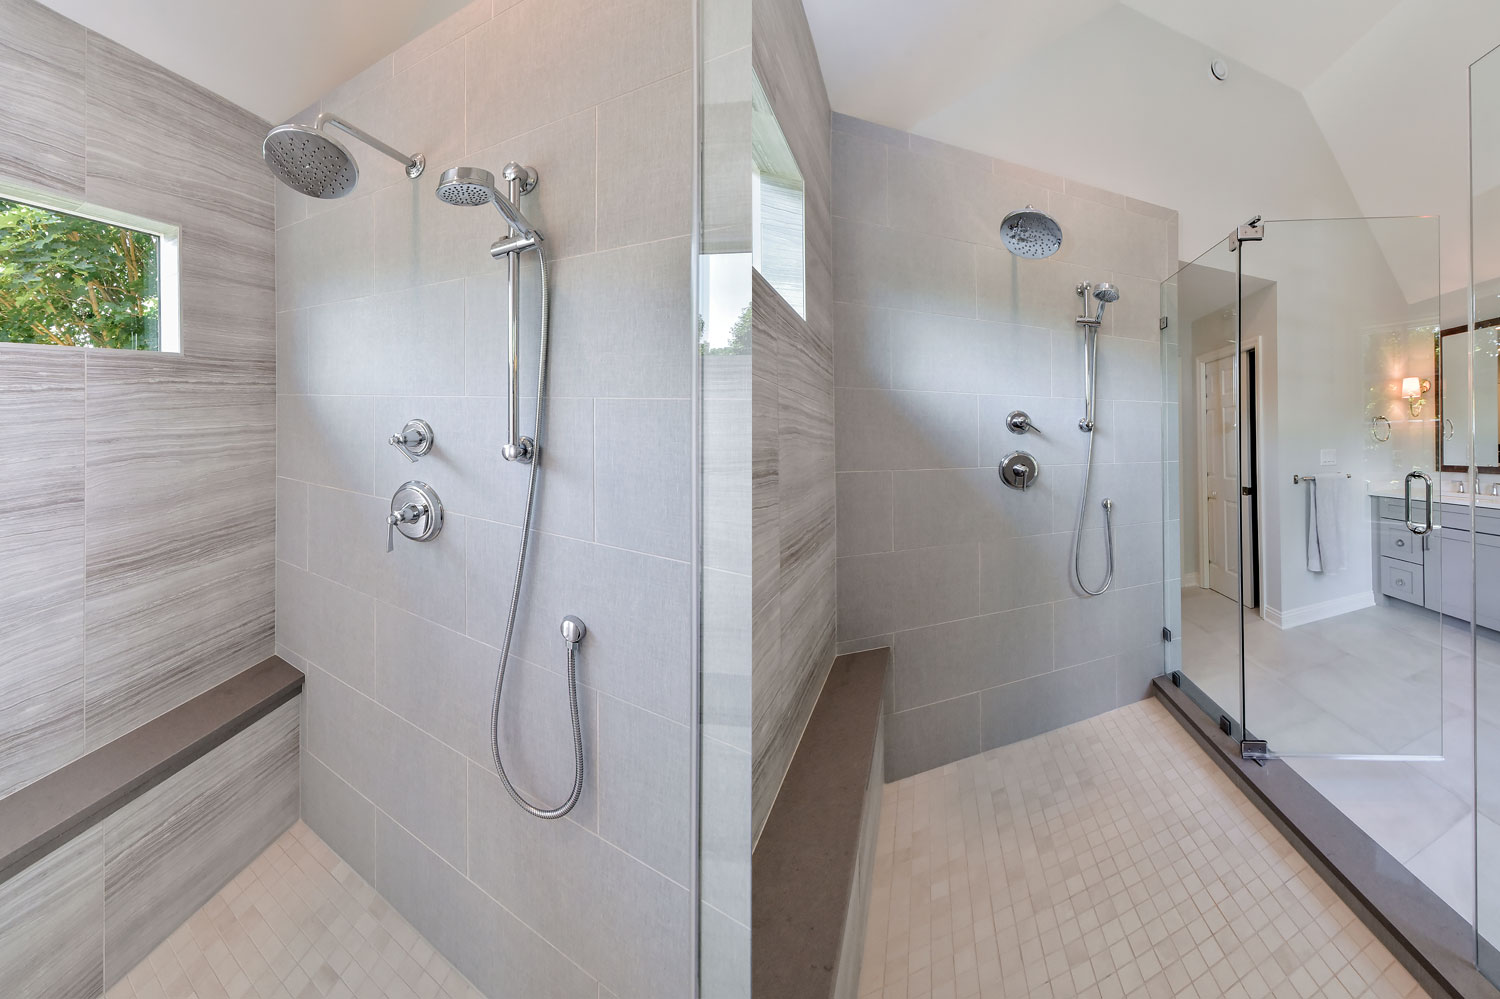 Bathroom Remodeling Tile Quartz Ideas Naperville - Sebring Services